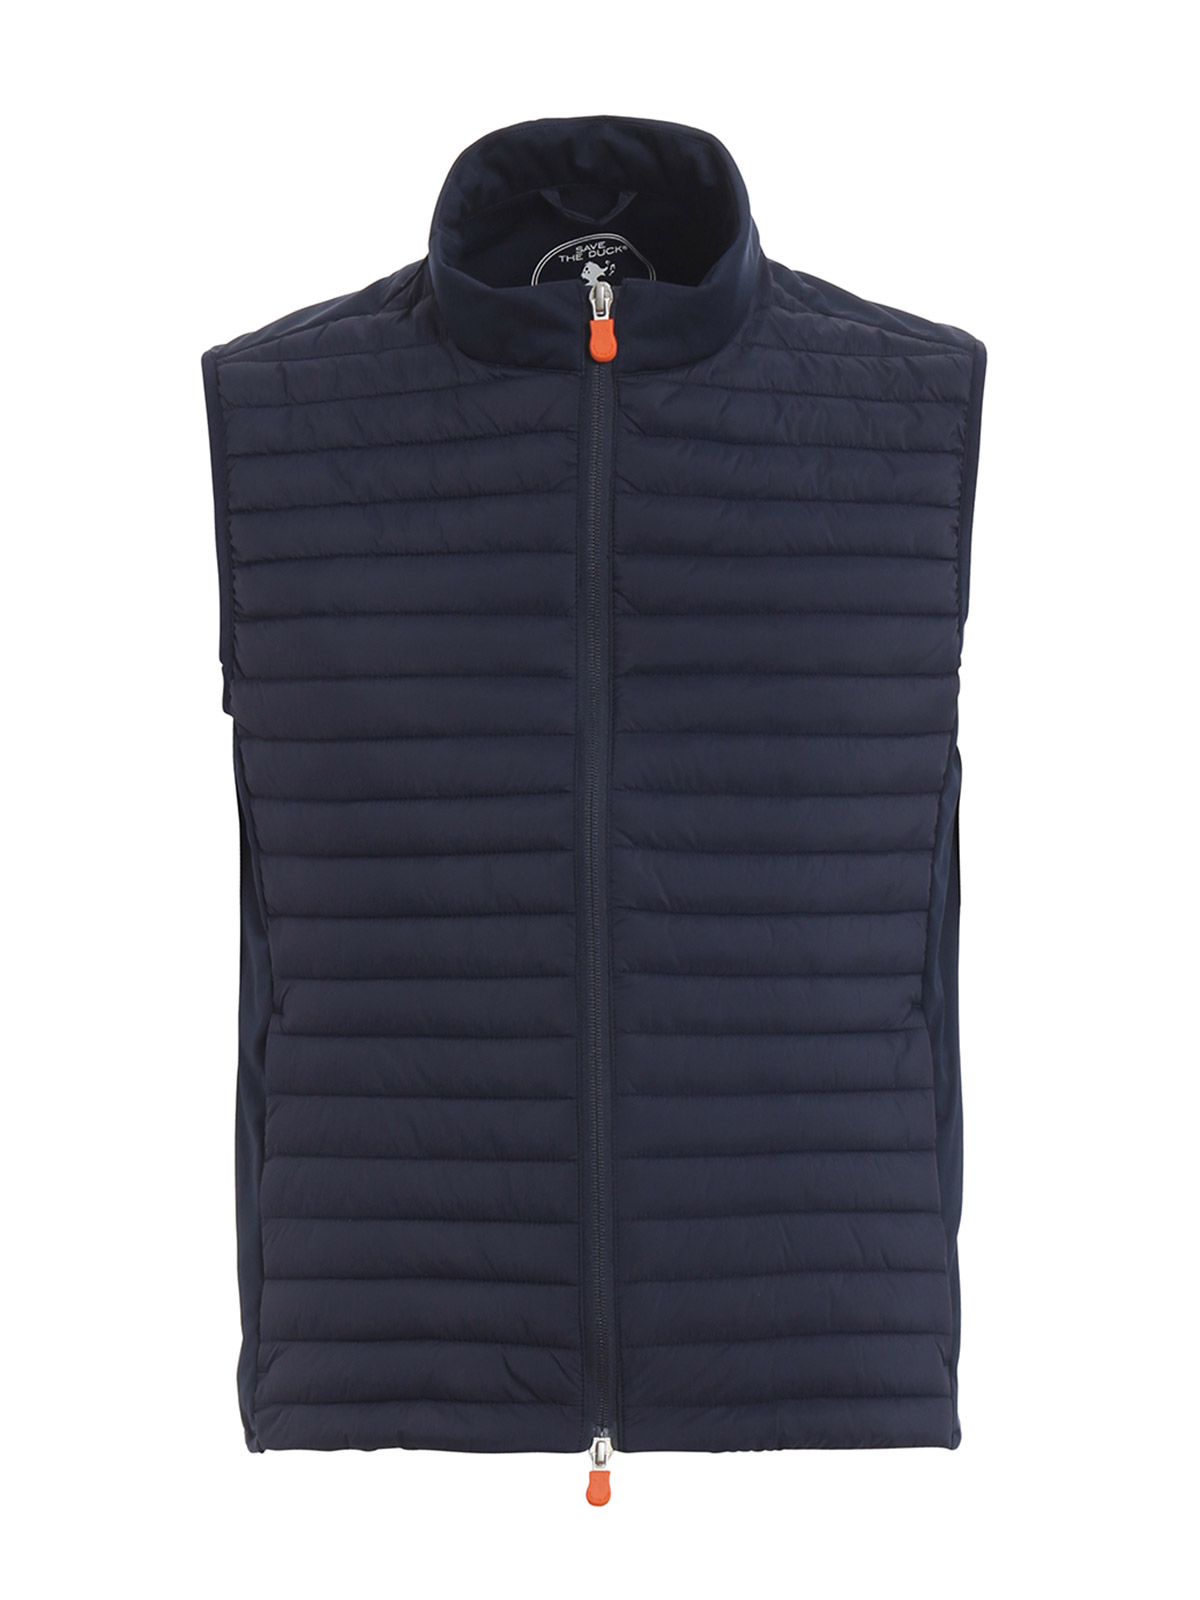 SAVE THE DUCK Gilet Uomo Trapuntato D8587M